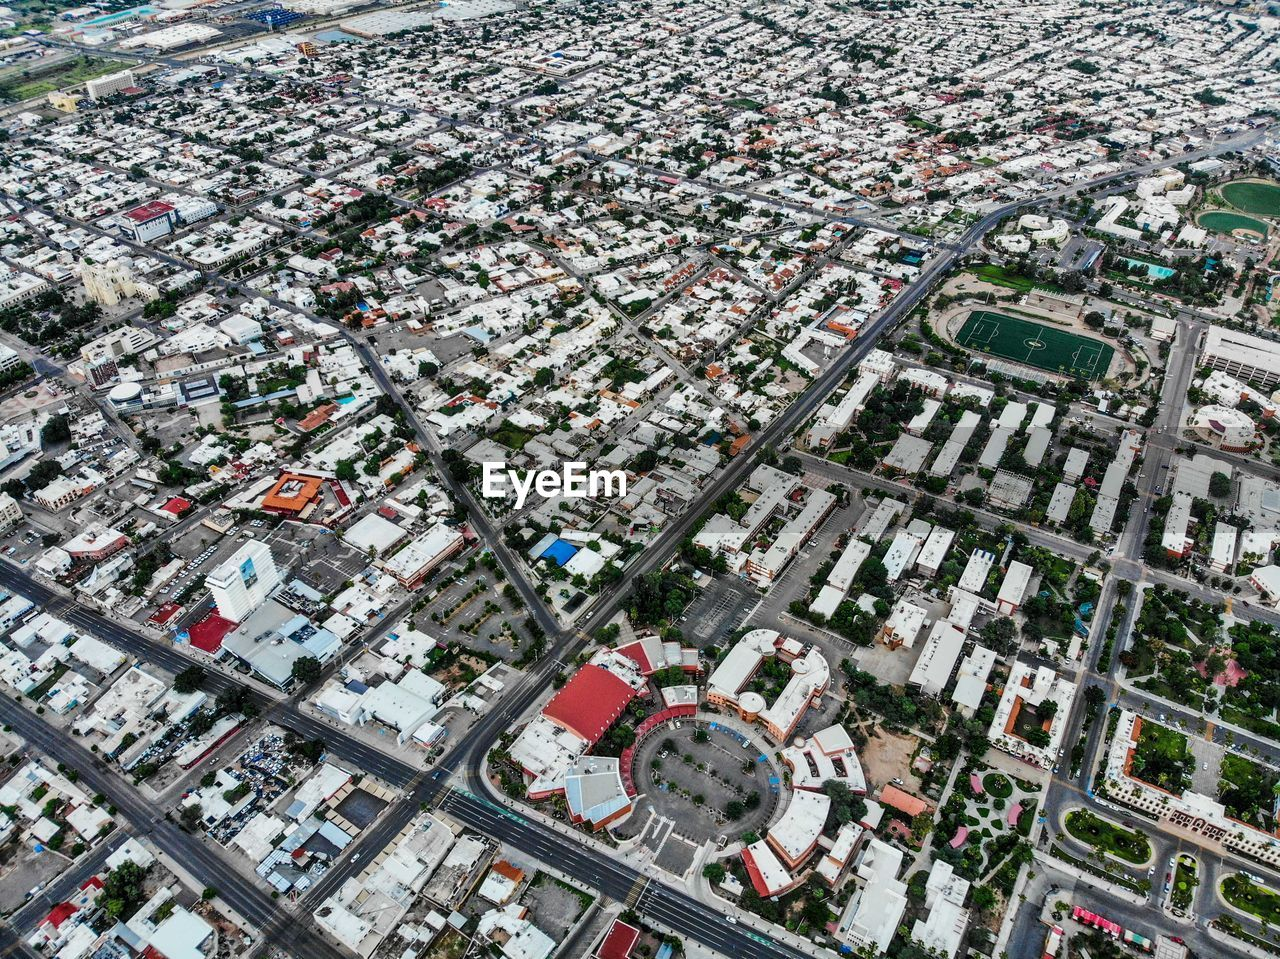 architecture, building exterior, city, built structure, high angle view, building, cityscape, residential district, aerial view, no people, day, road, outdoors, roof, community, nature, house, urban sprawl